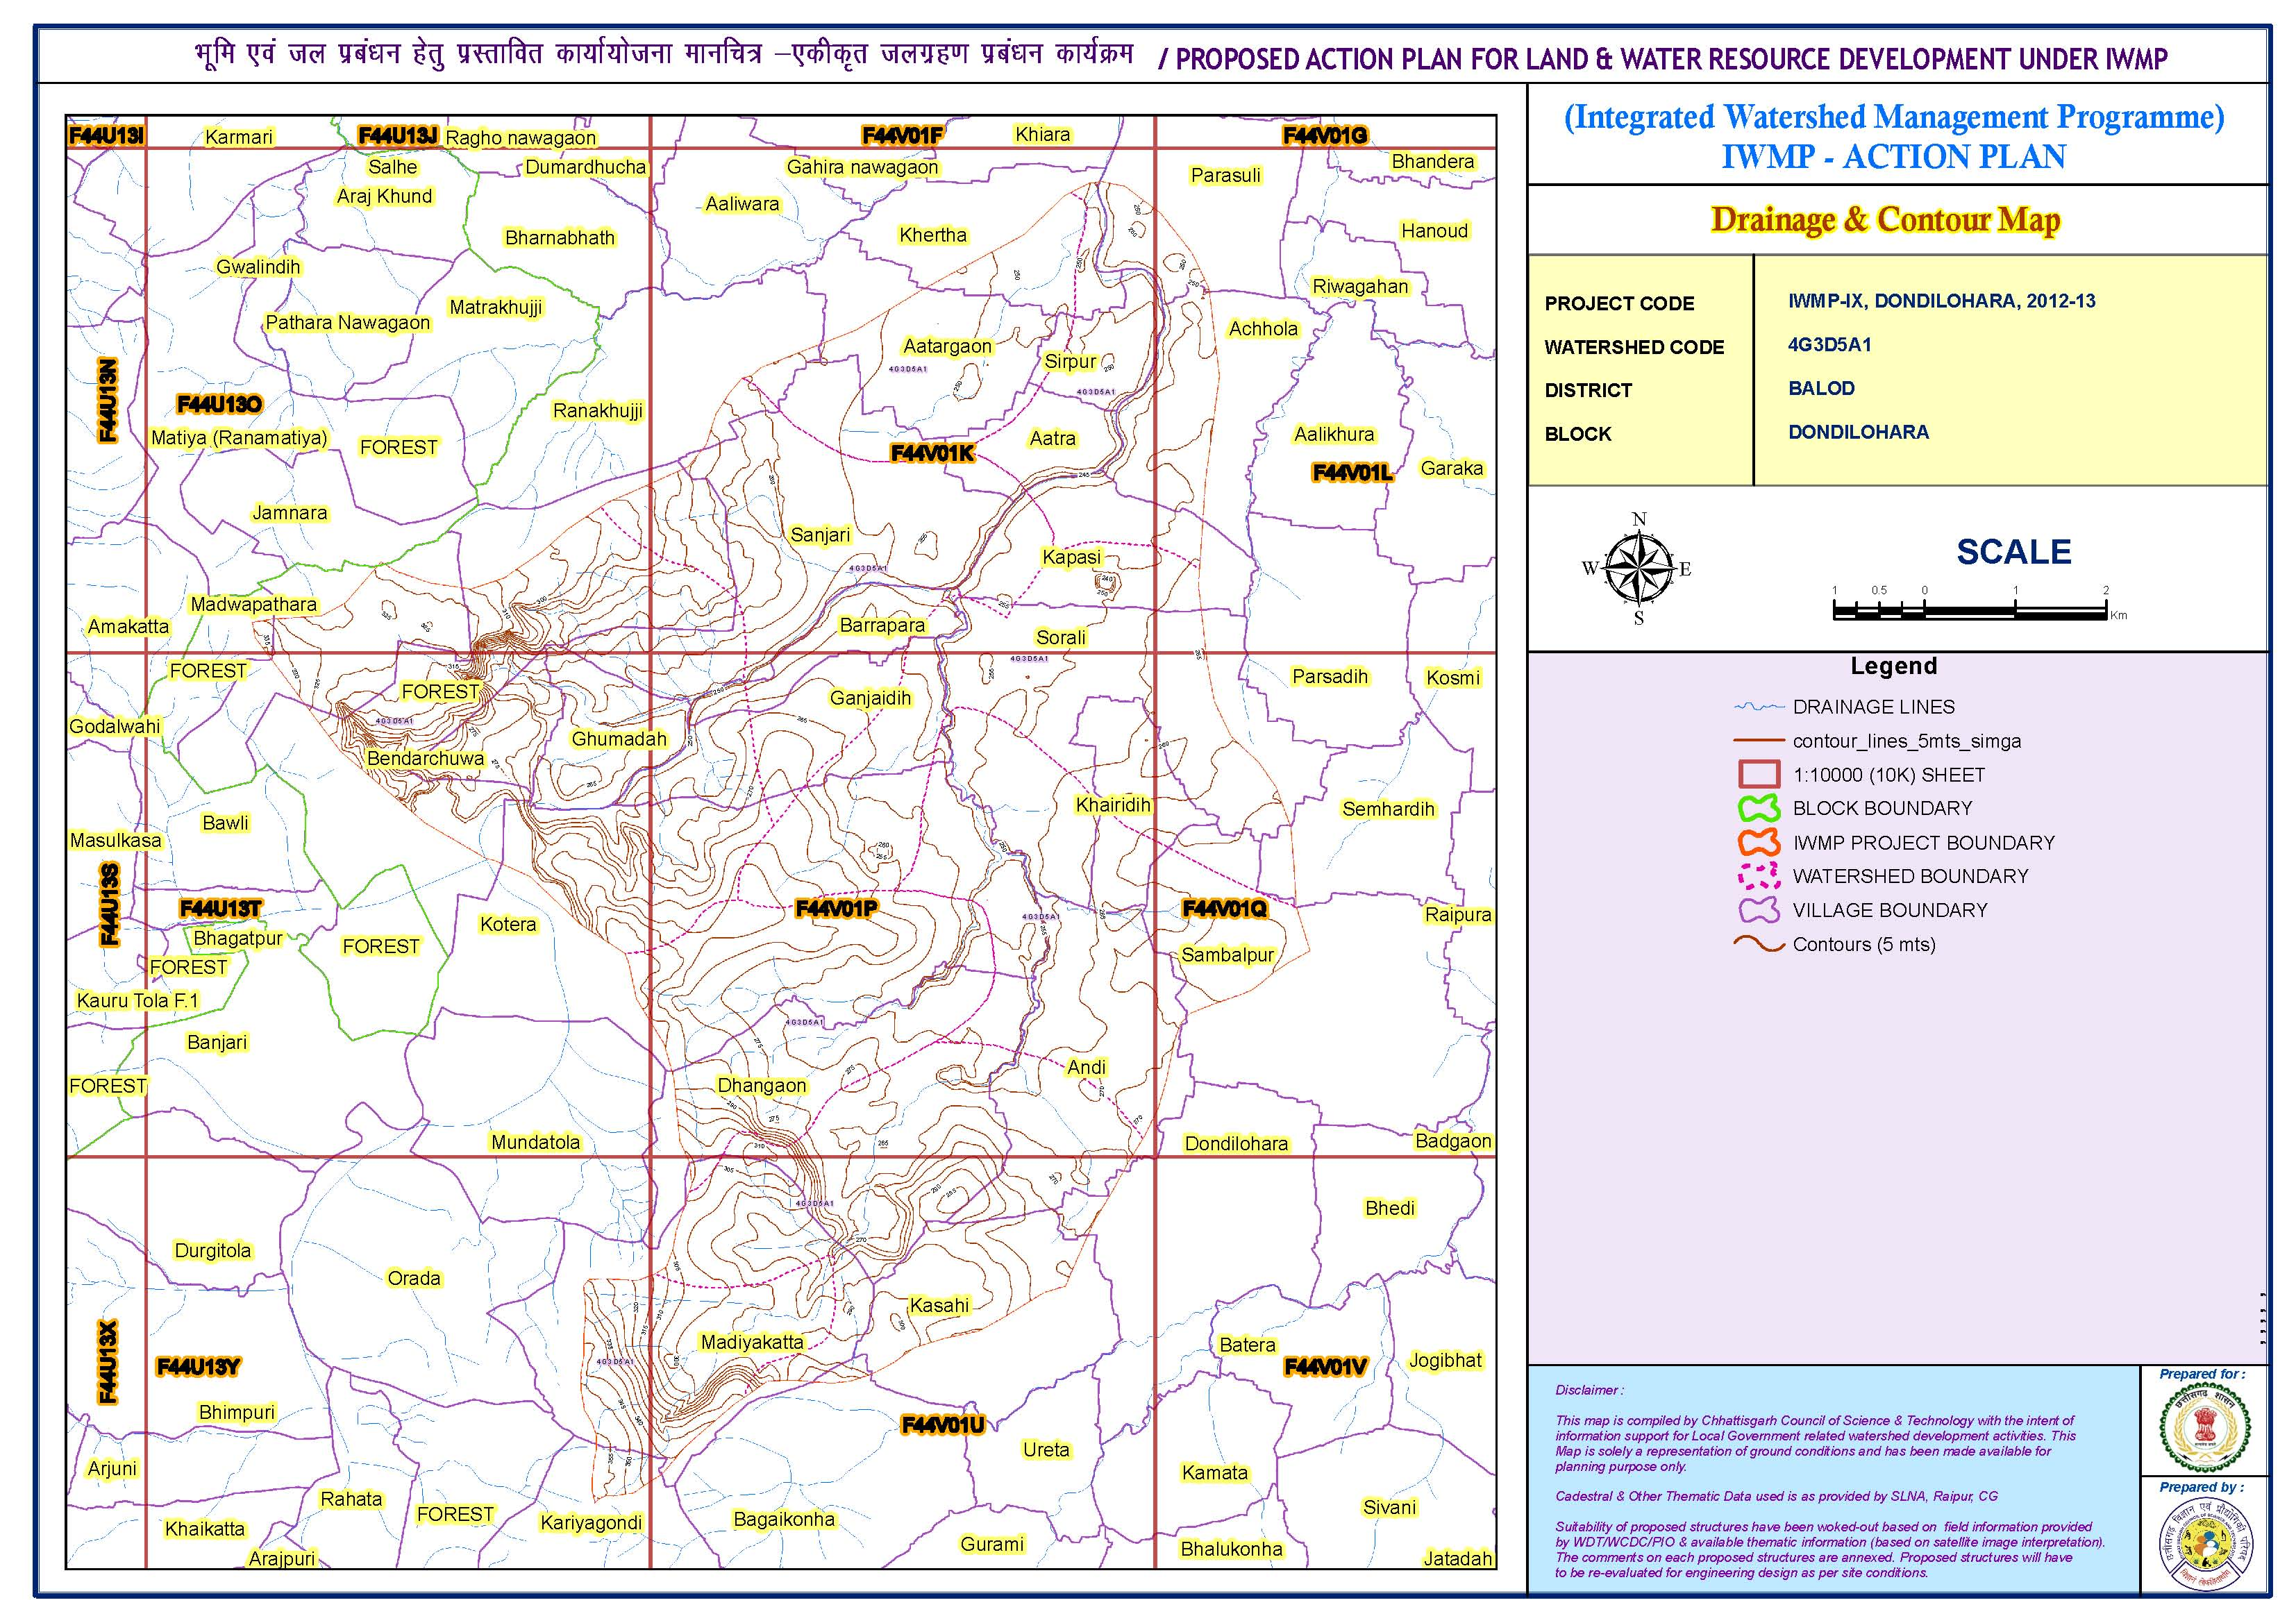 Integrated watershed management (Drainage and contour map)